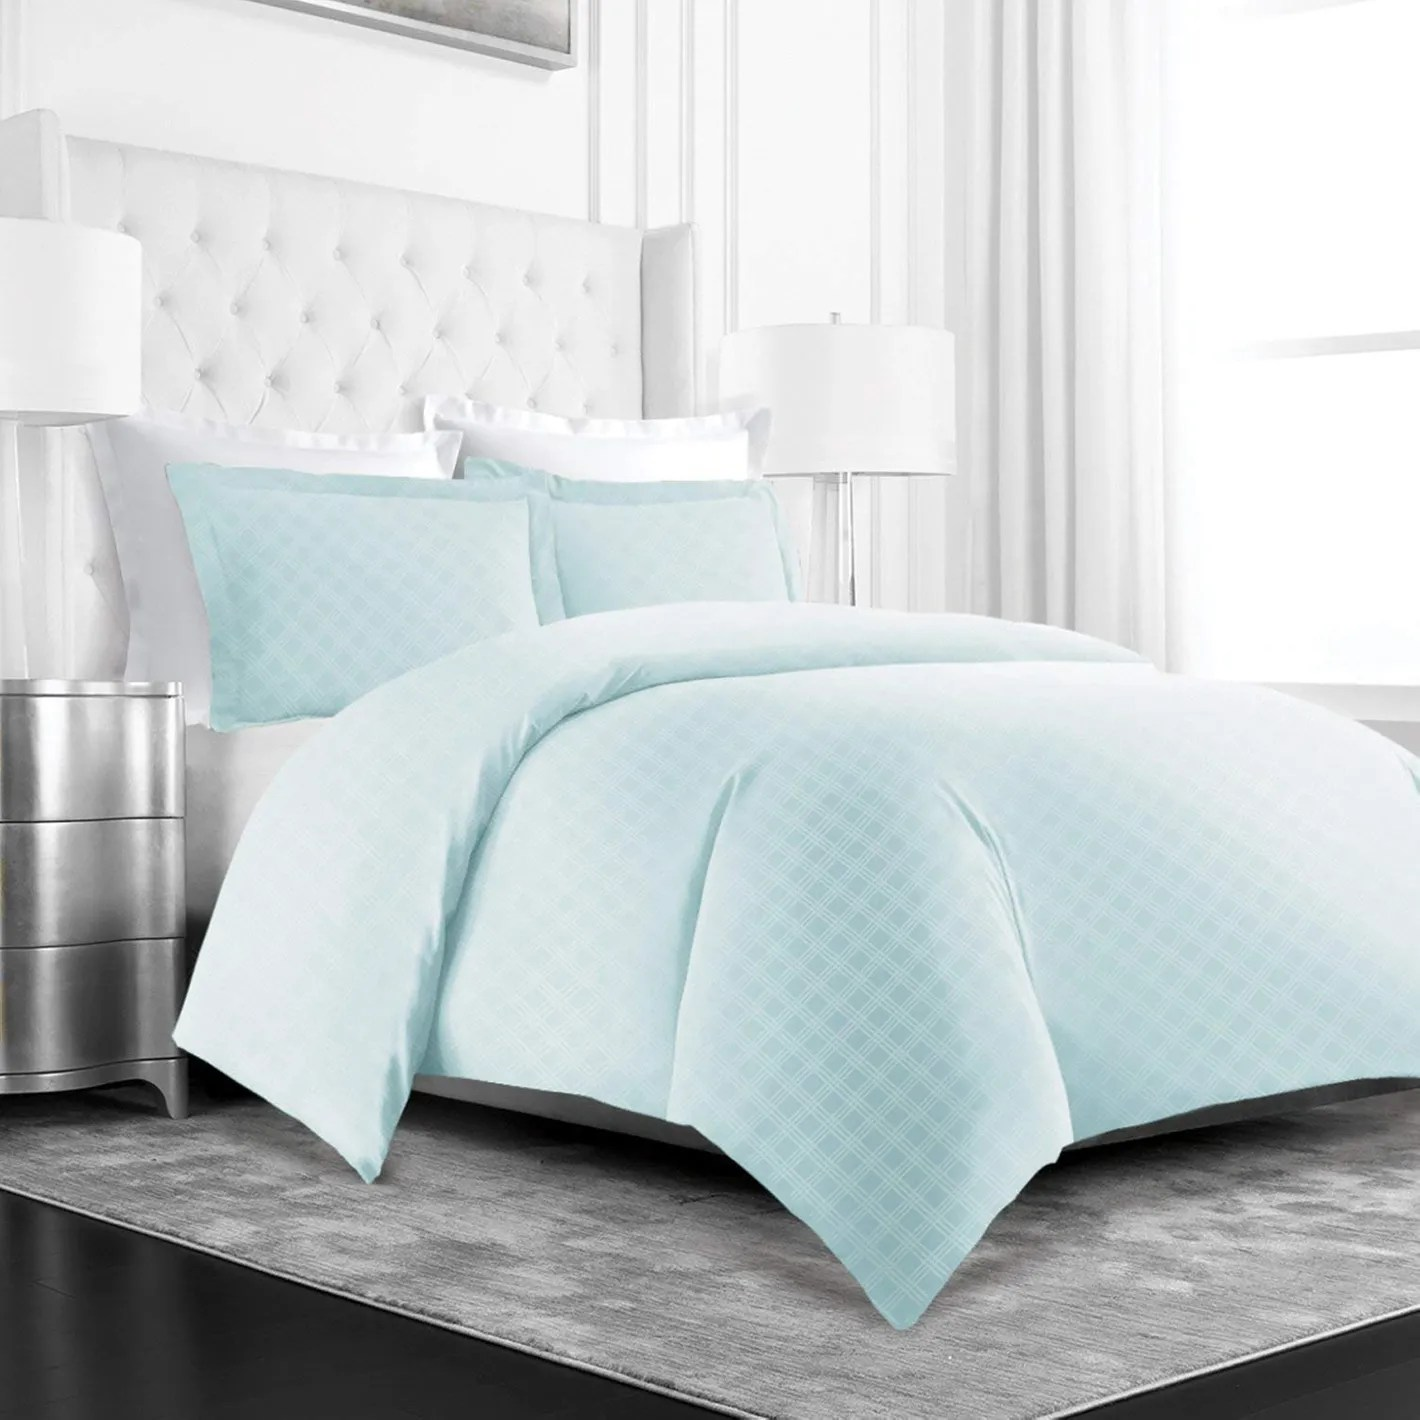 Where To Buy Nice Duvet Covers Beckham Hotel Collection Luxury Soft Brushed Microfiber Duvet Cover Set With Embossed Diamond Pattern